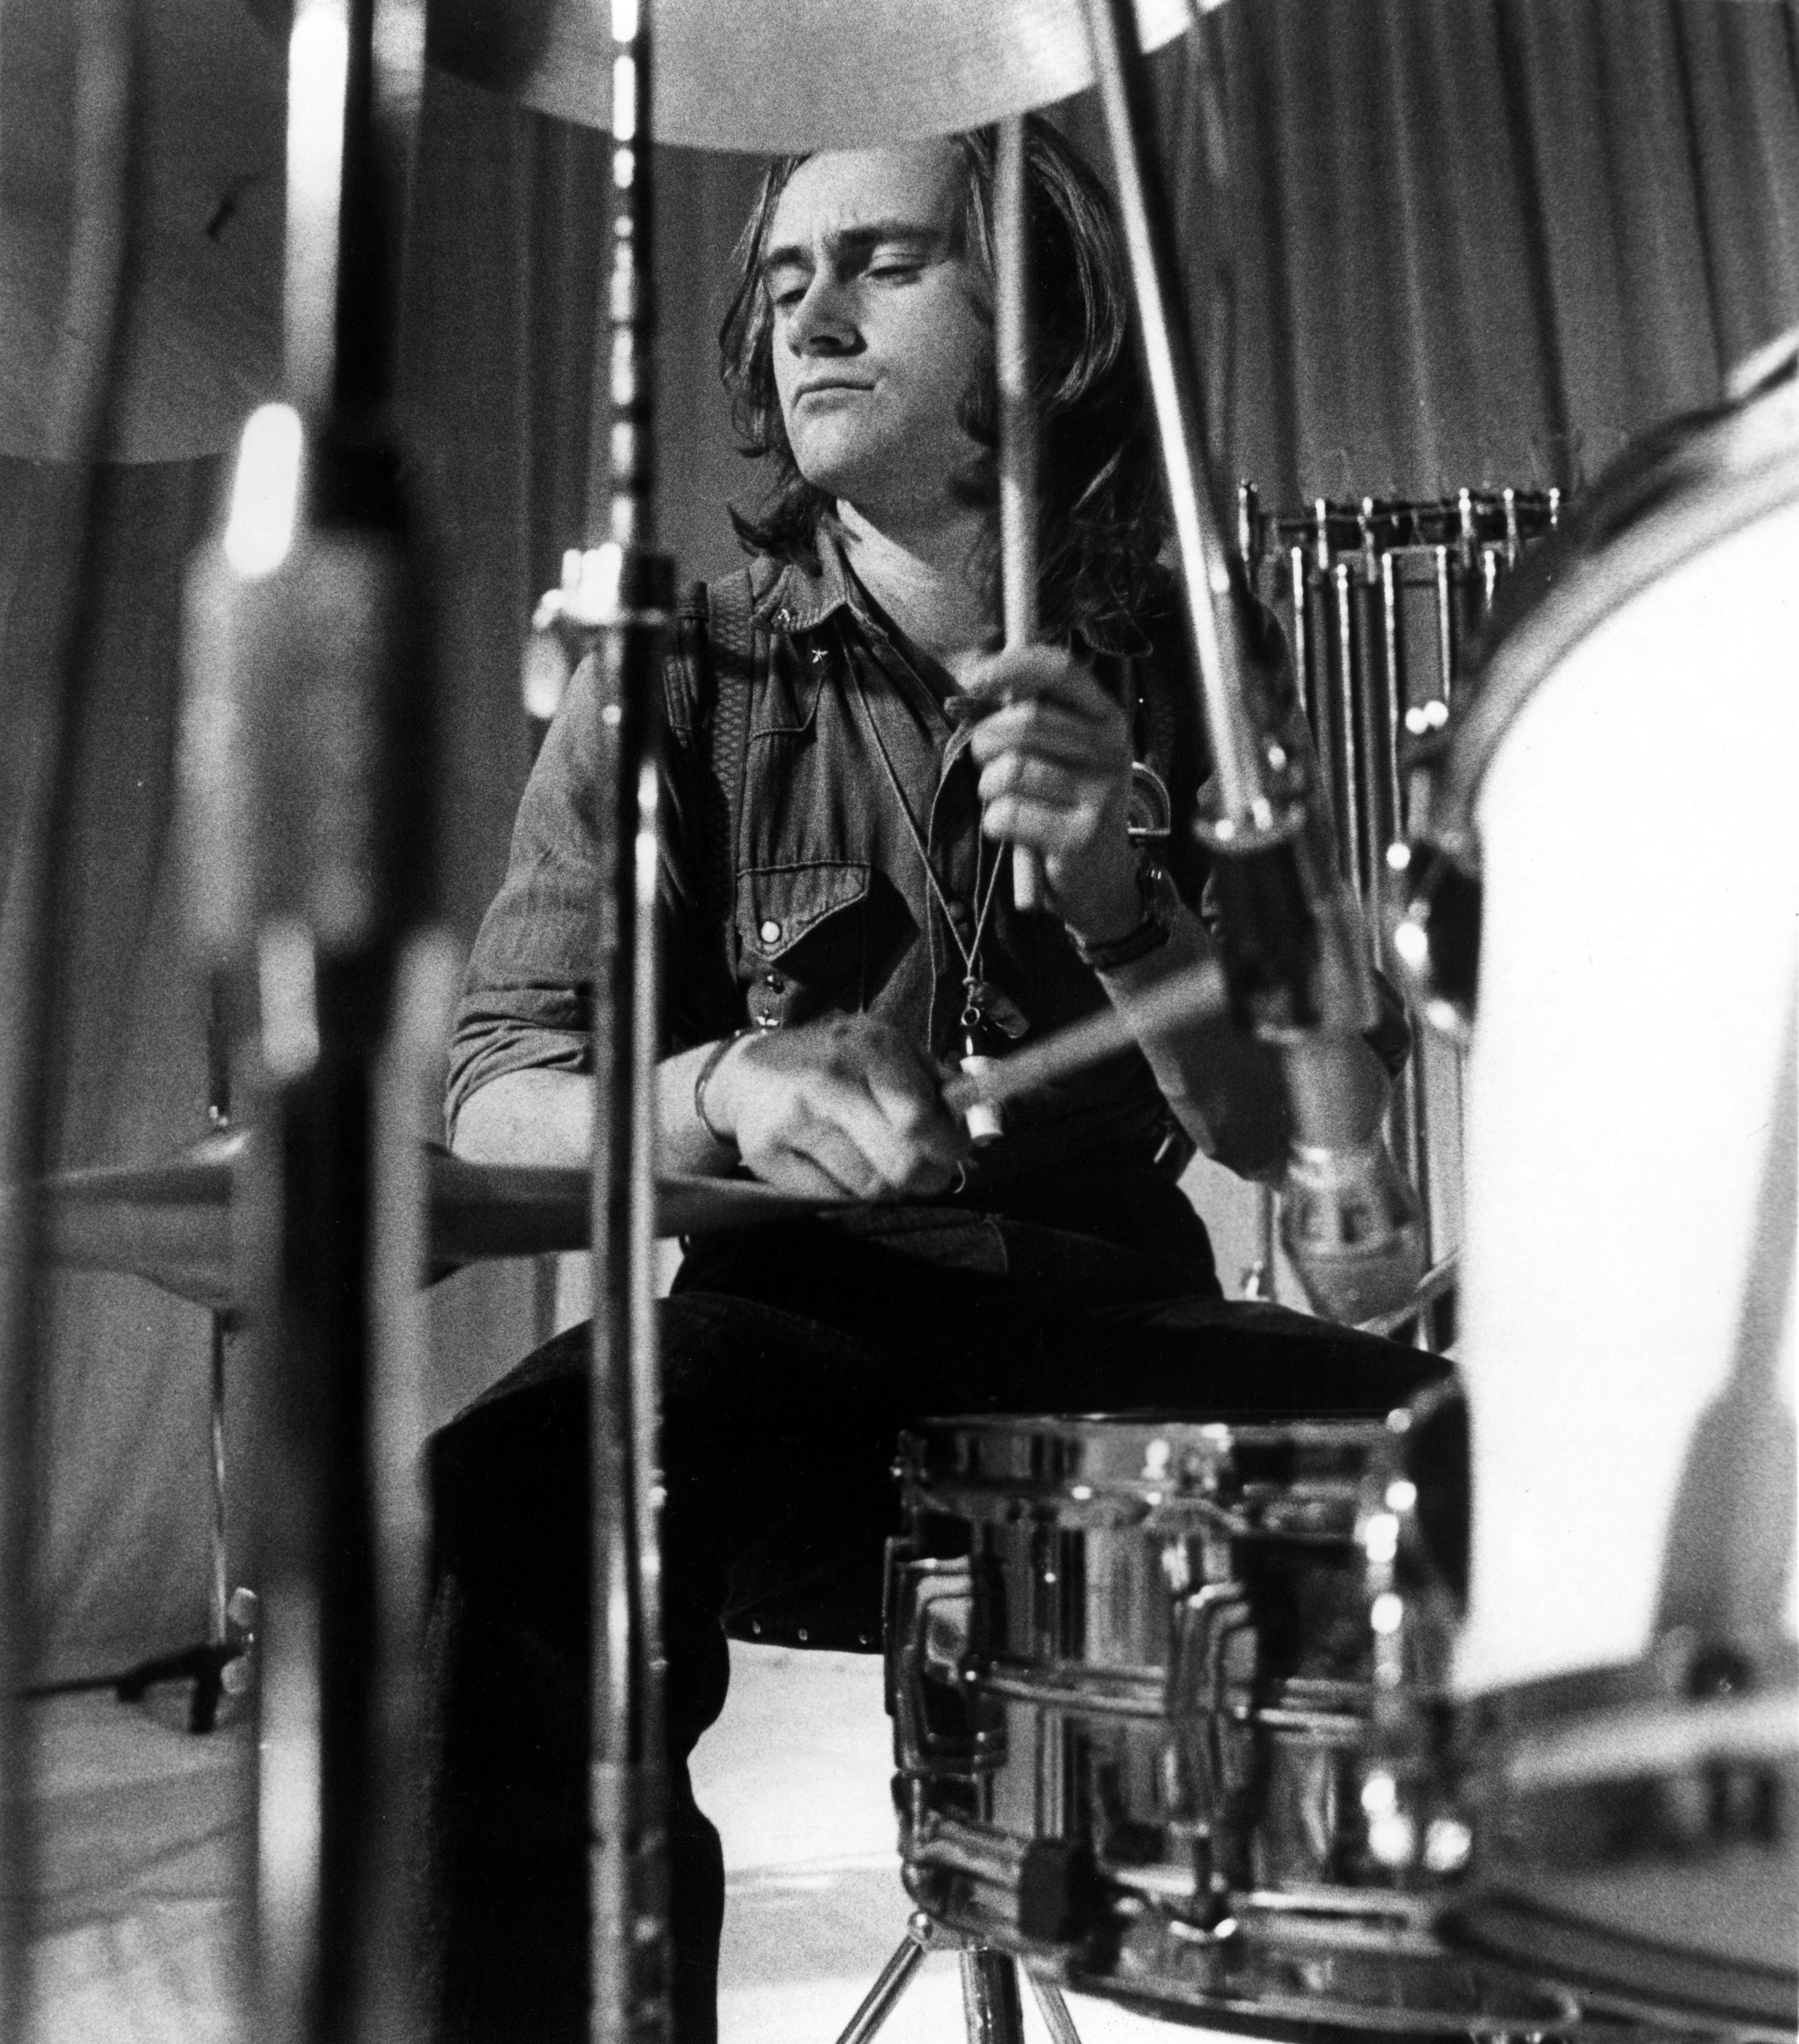 Phil Collins mandando ver na bateria em 1972 (Foto: Getty Images)